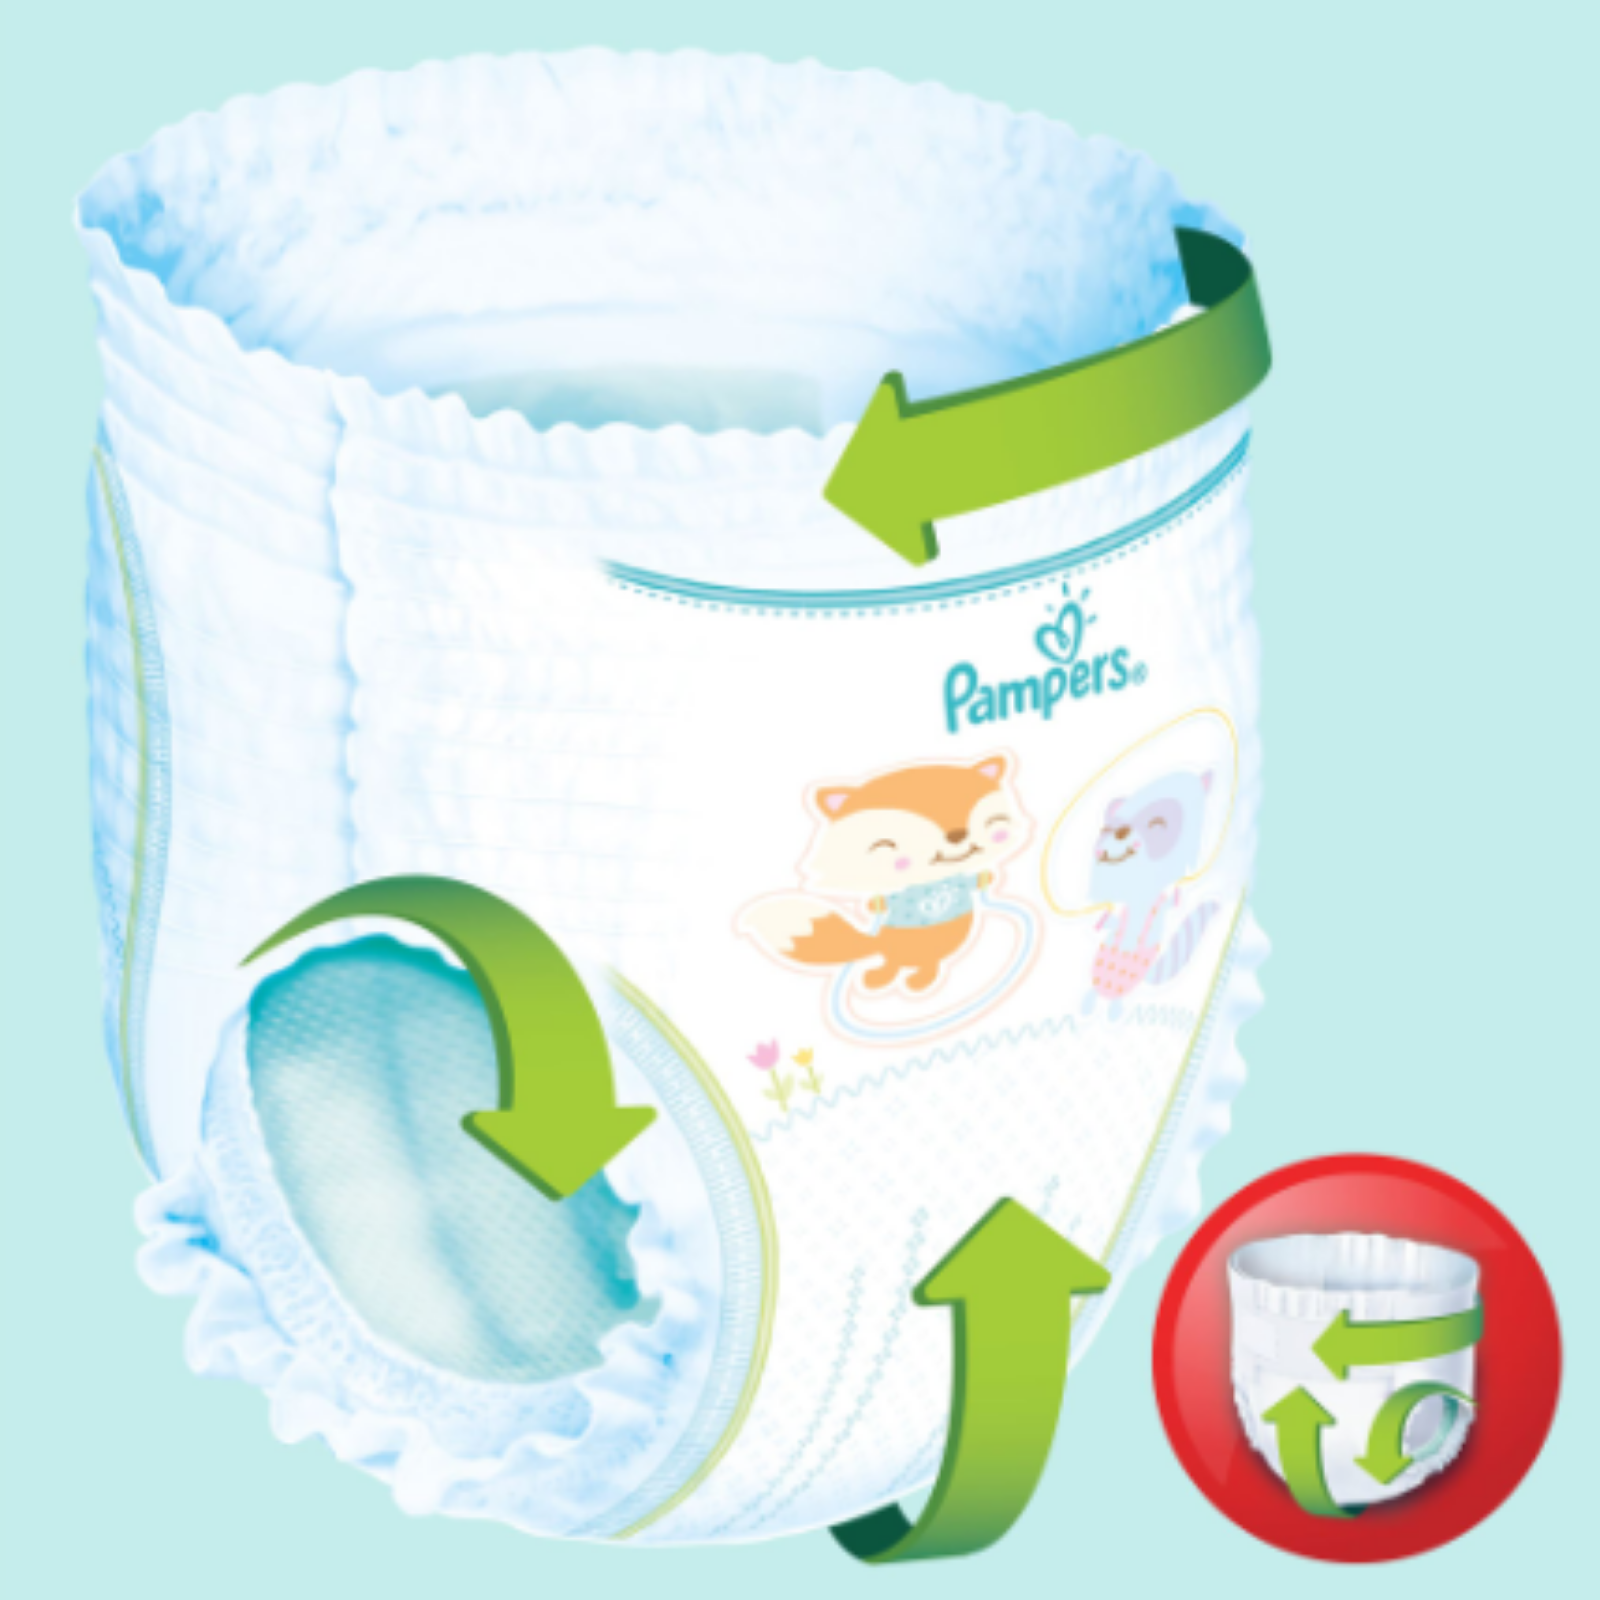 Scutece chilotel Pampers Pants Carry Pack Nr 5, 12-17 kg, 22 buc [1]